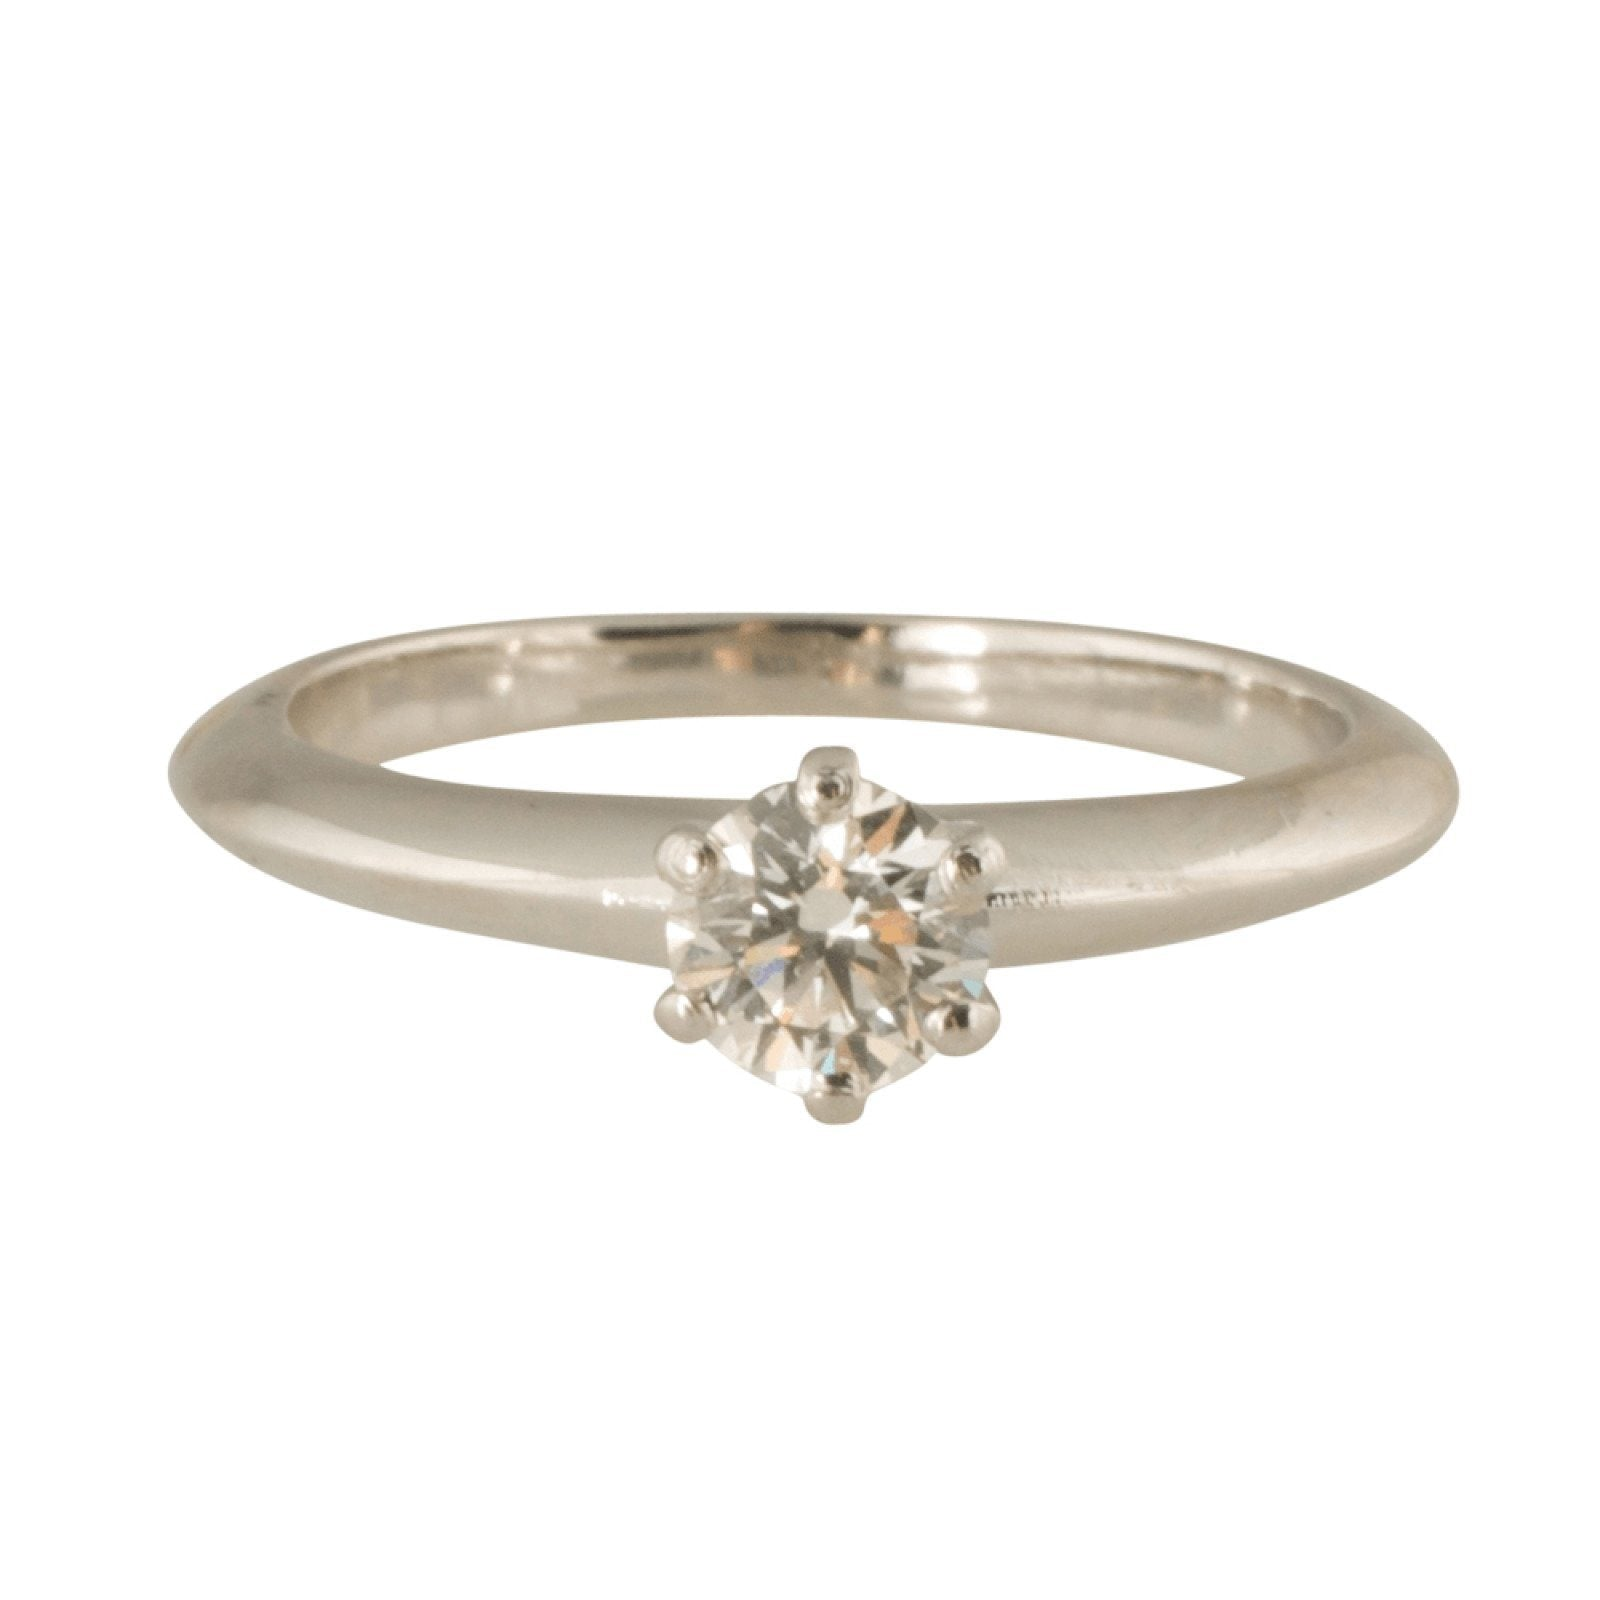 d8147579f Tiffany & Co. Solitaire 0.30ct Round Diamond Engagement Ring Rings Tiffany  & Co.